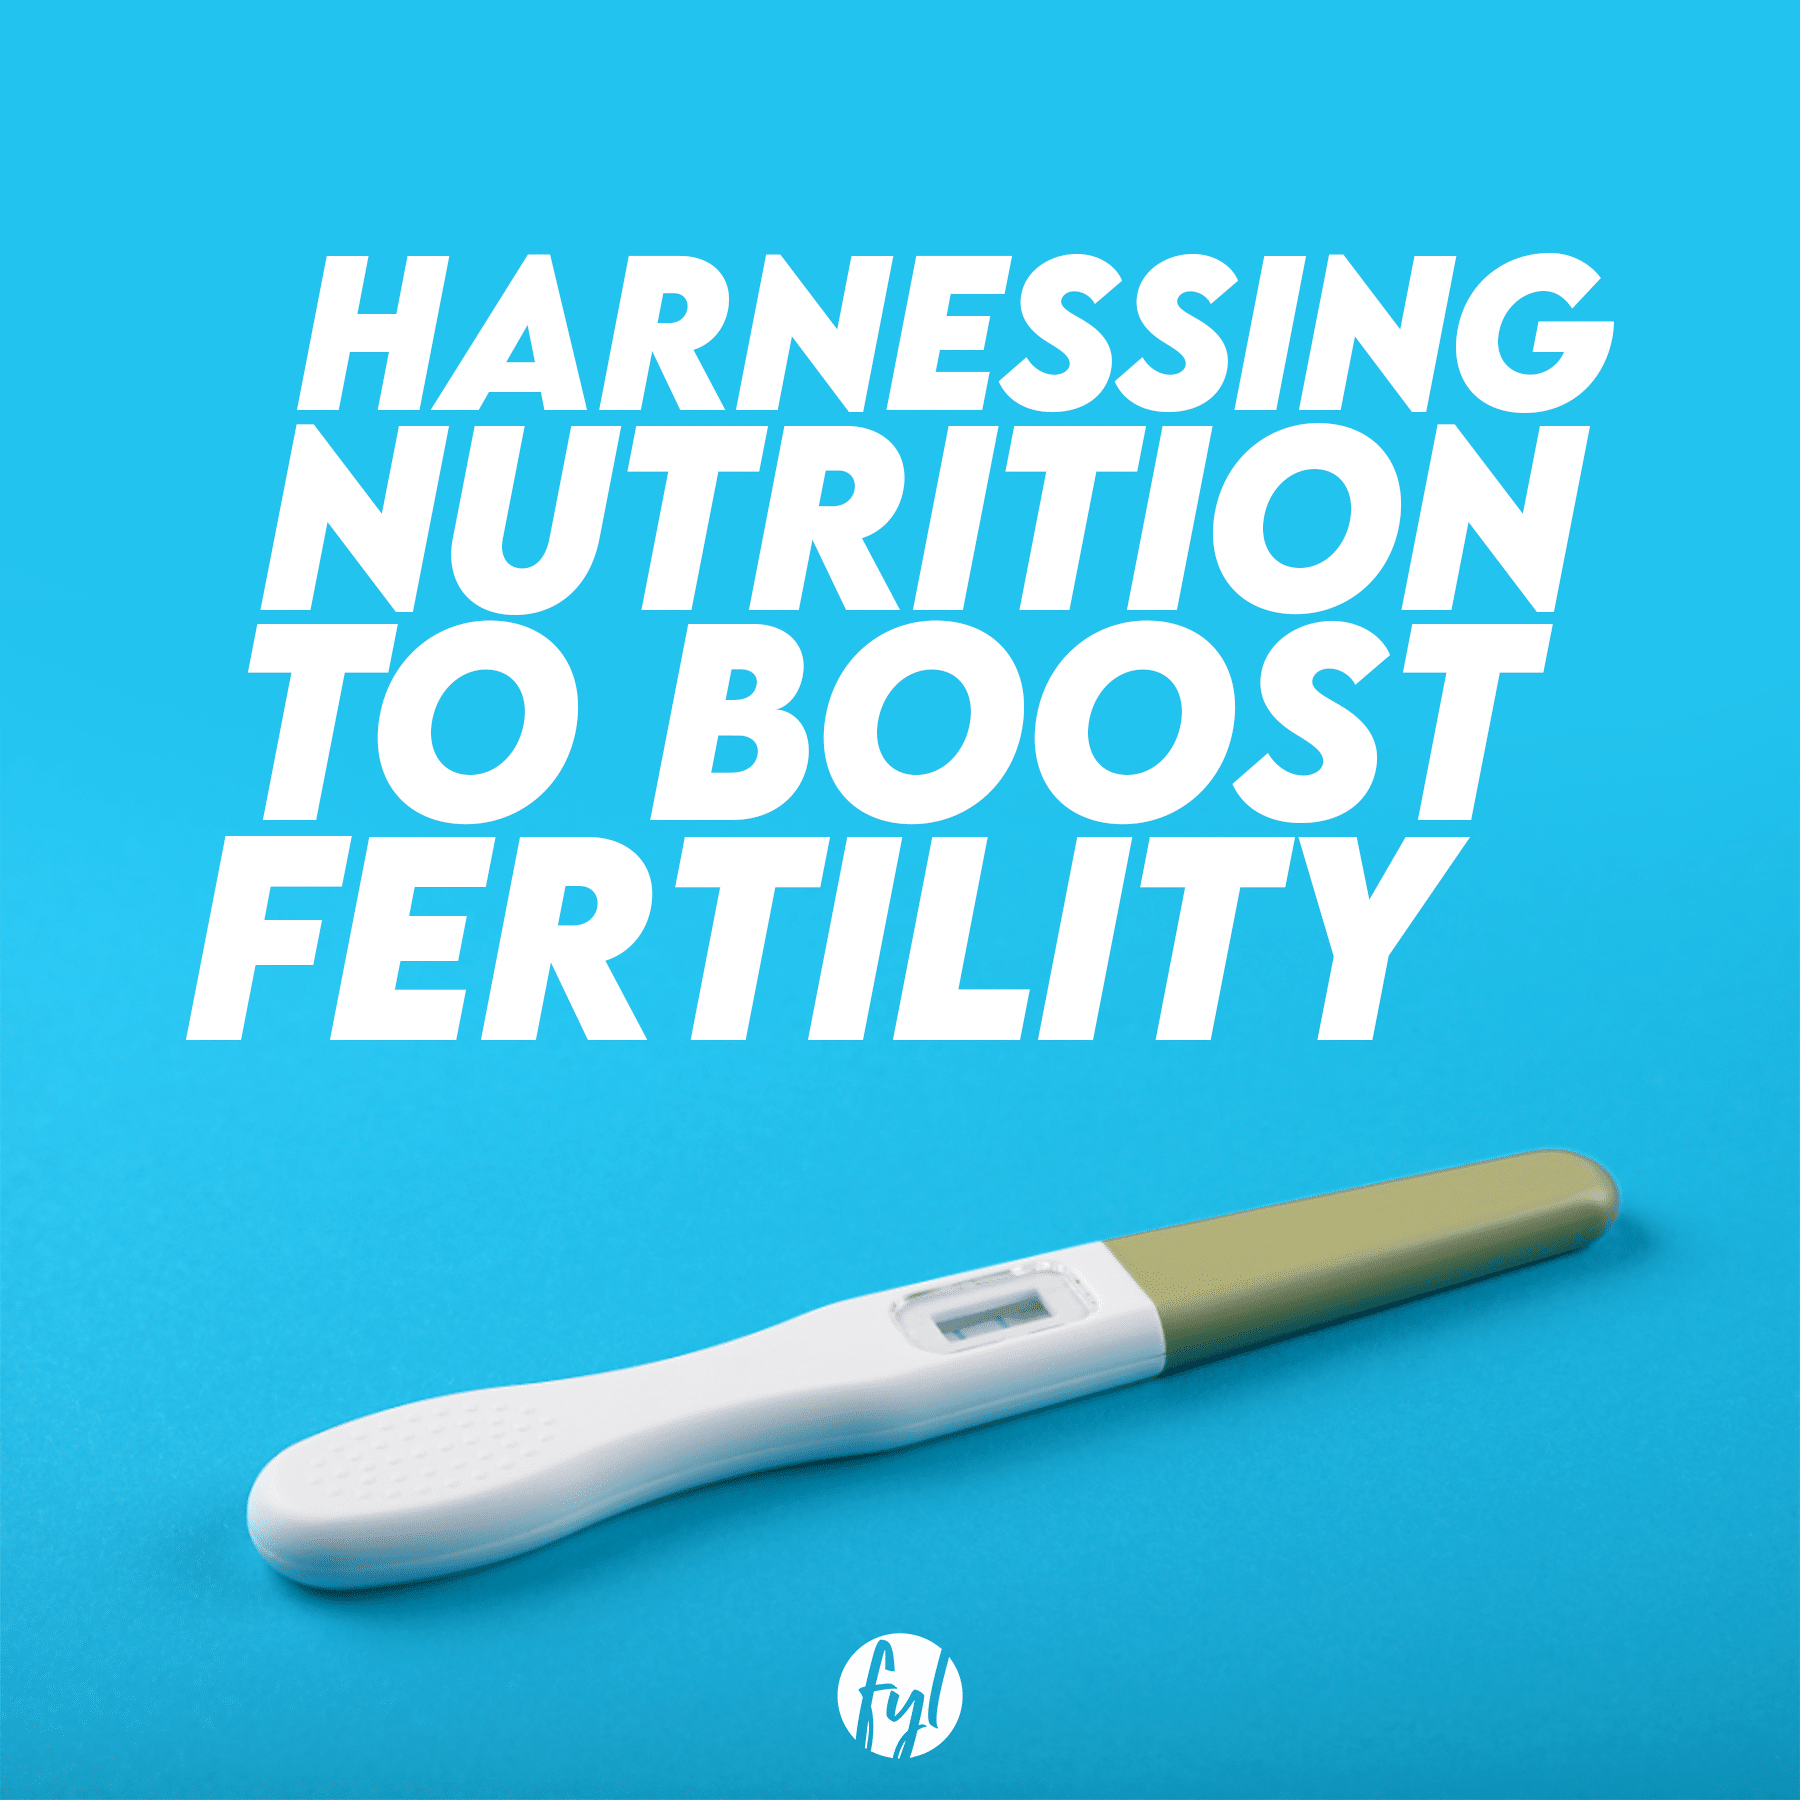 Harnessing Nutrition to Boost Fertility